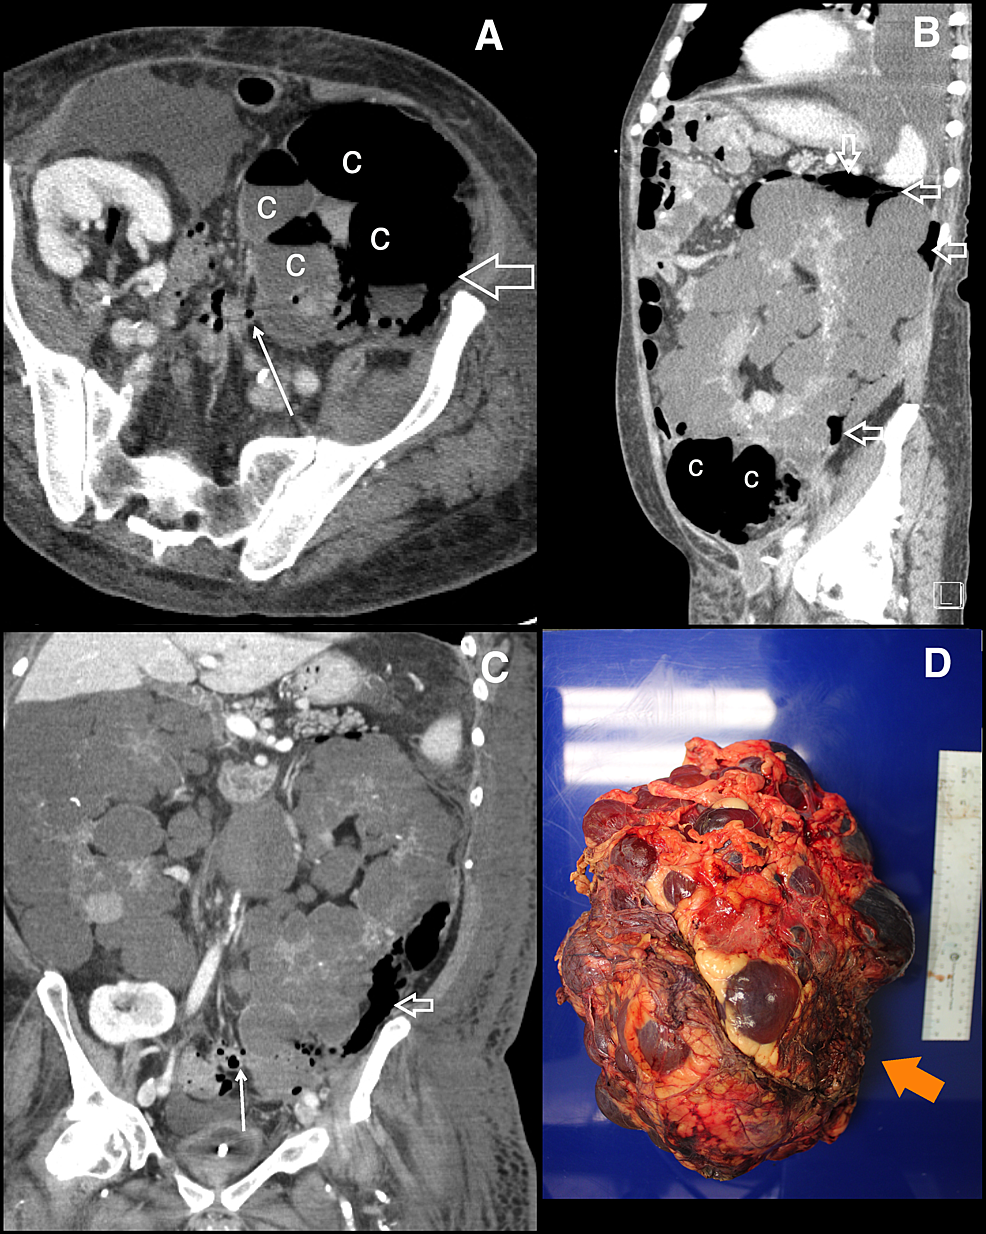 Retroperitoneal-rupture-of-infected-renal-cysts.